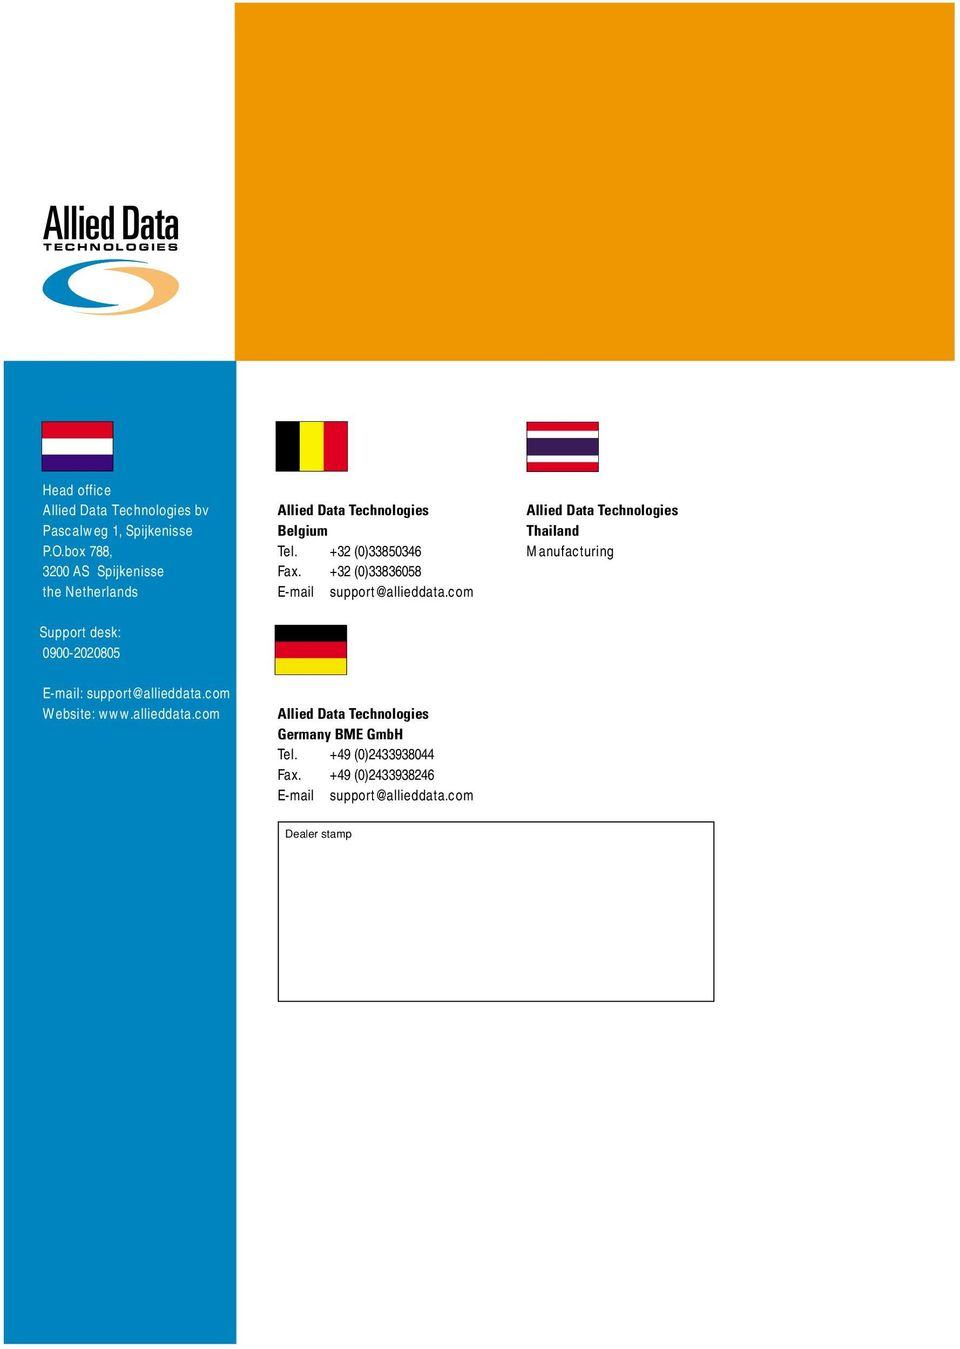 com Thailand Manufacturing Support desk: 0900-2020805 E-mail: support@allieddata.com Website: www.